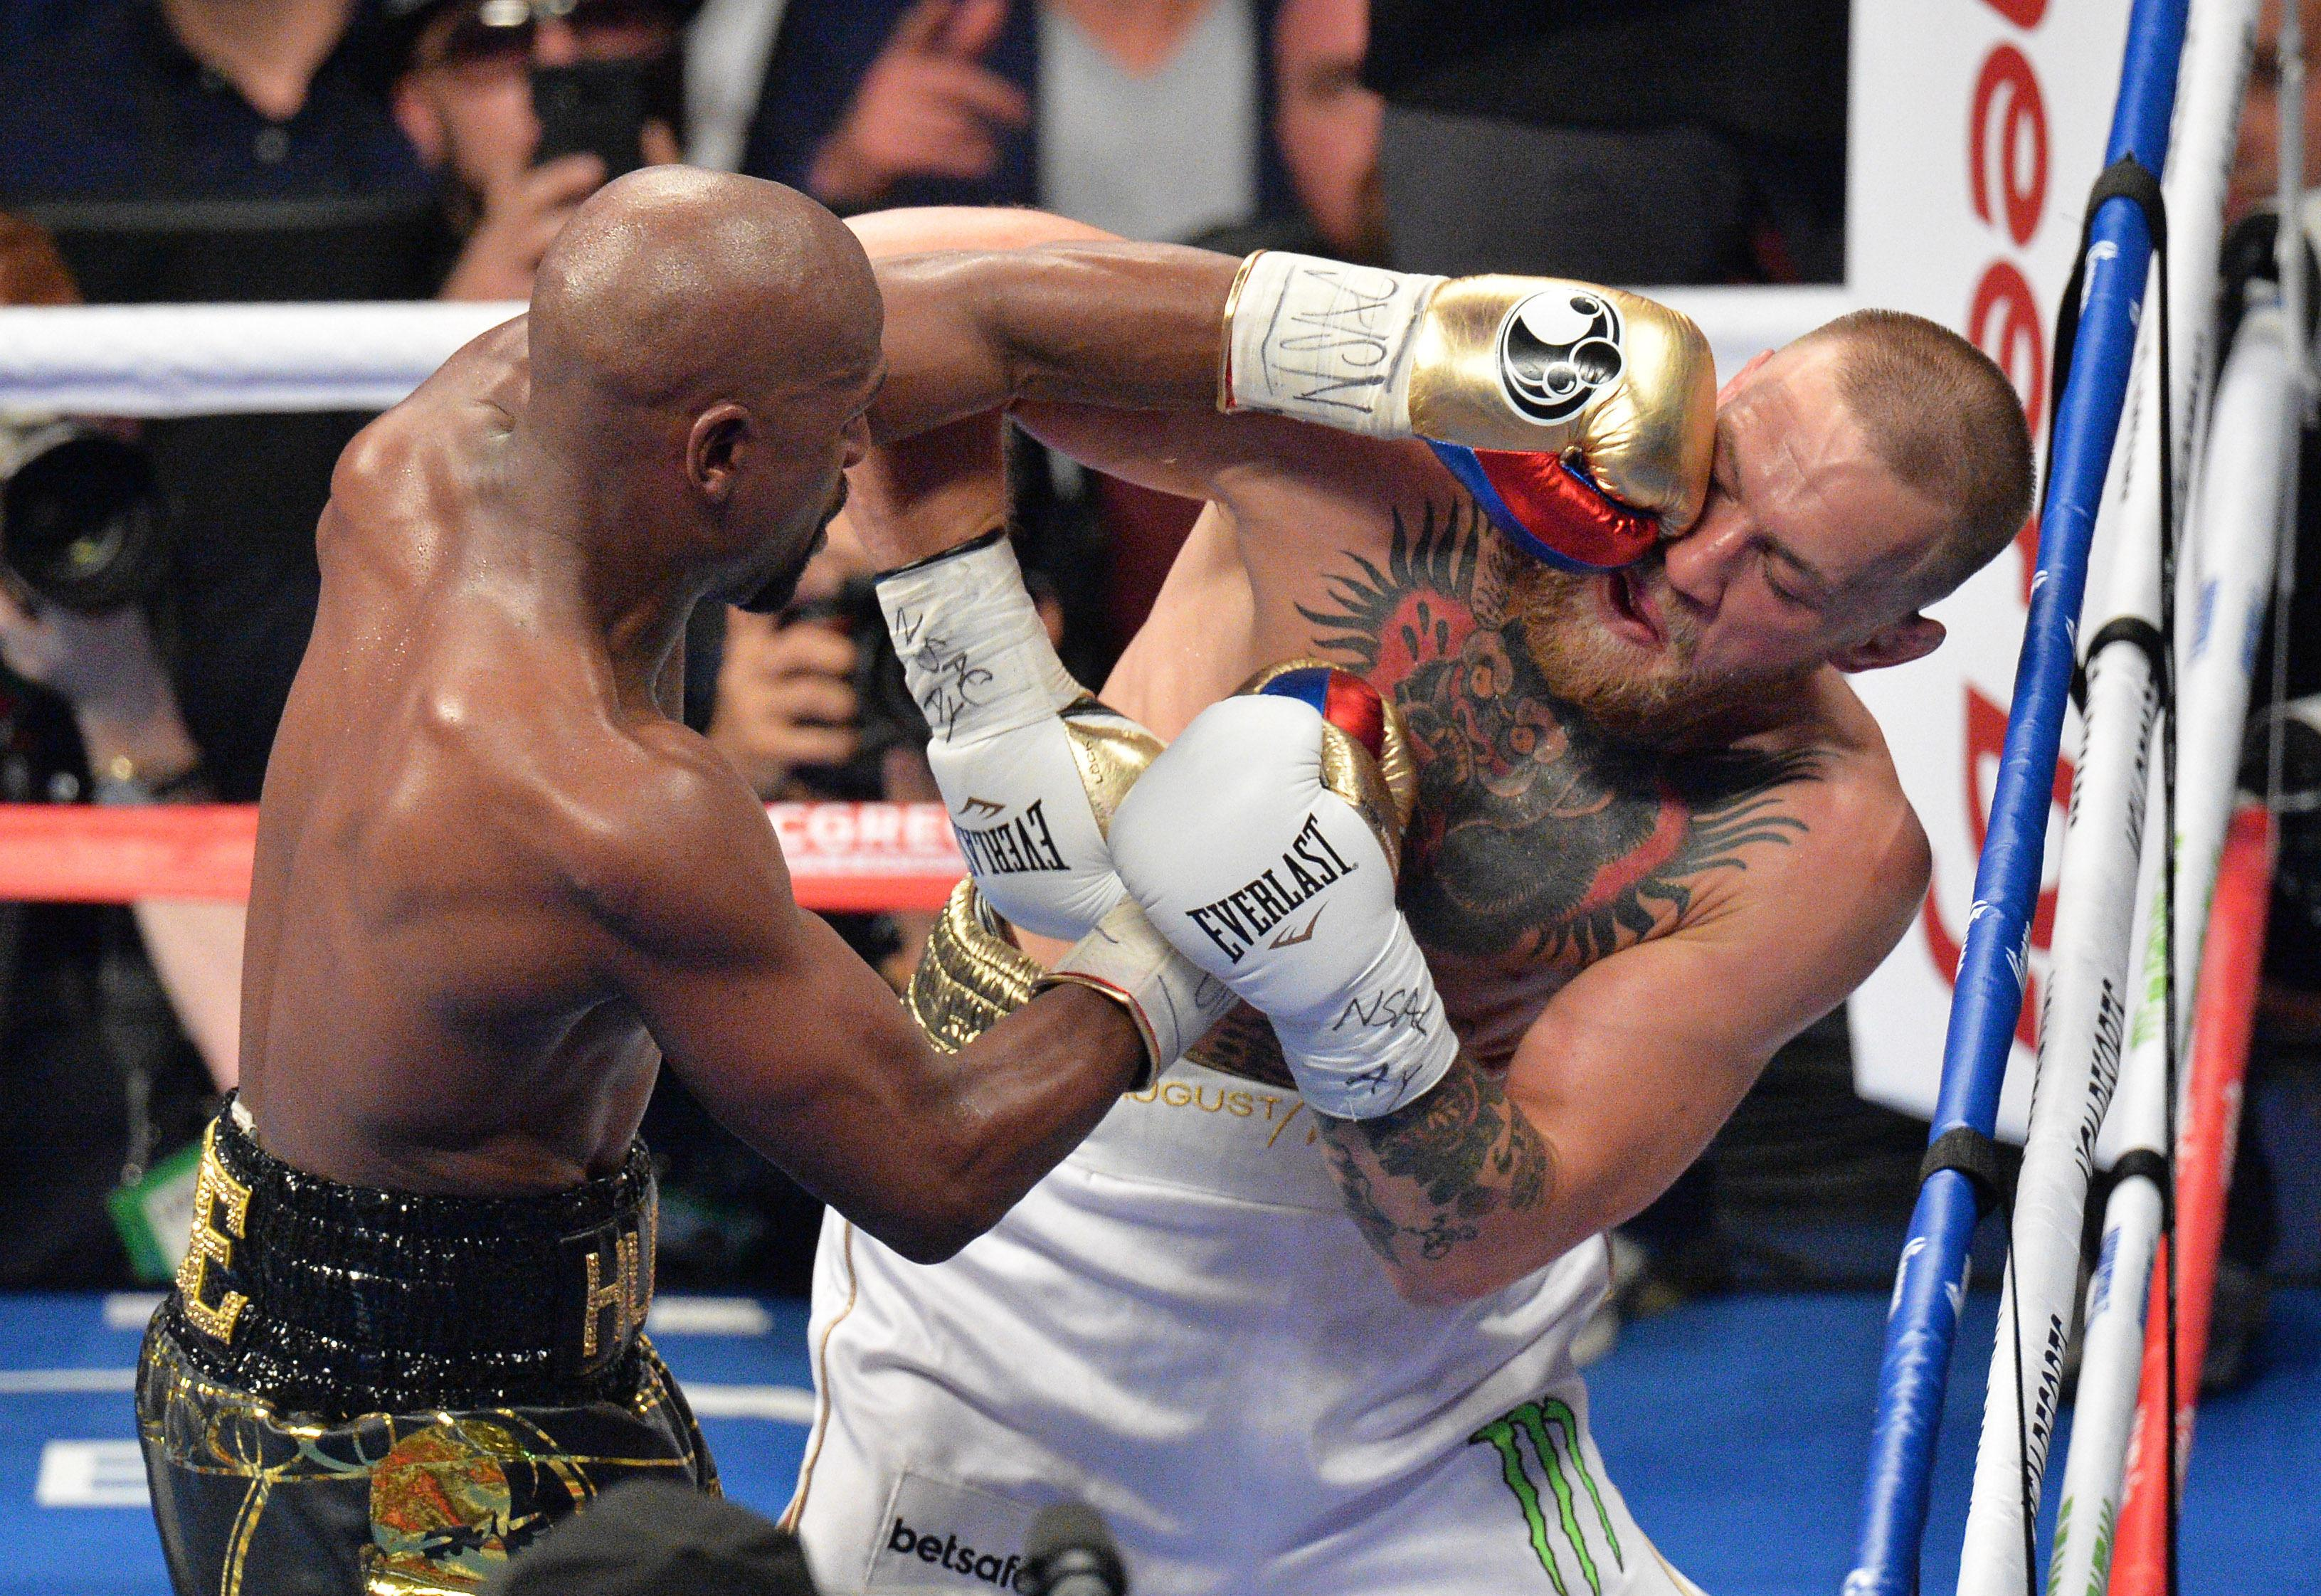 Mayweather, 41, knocked out McGregor in the tenth round in their bout last August